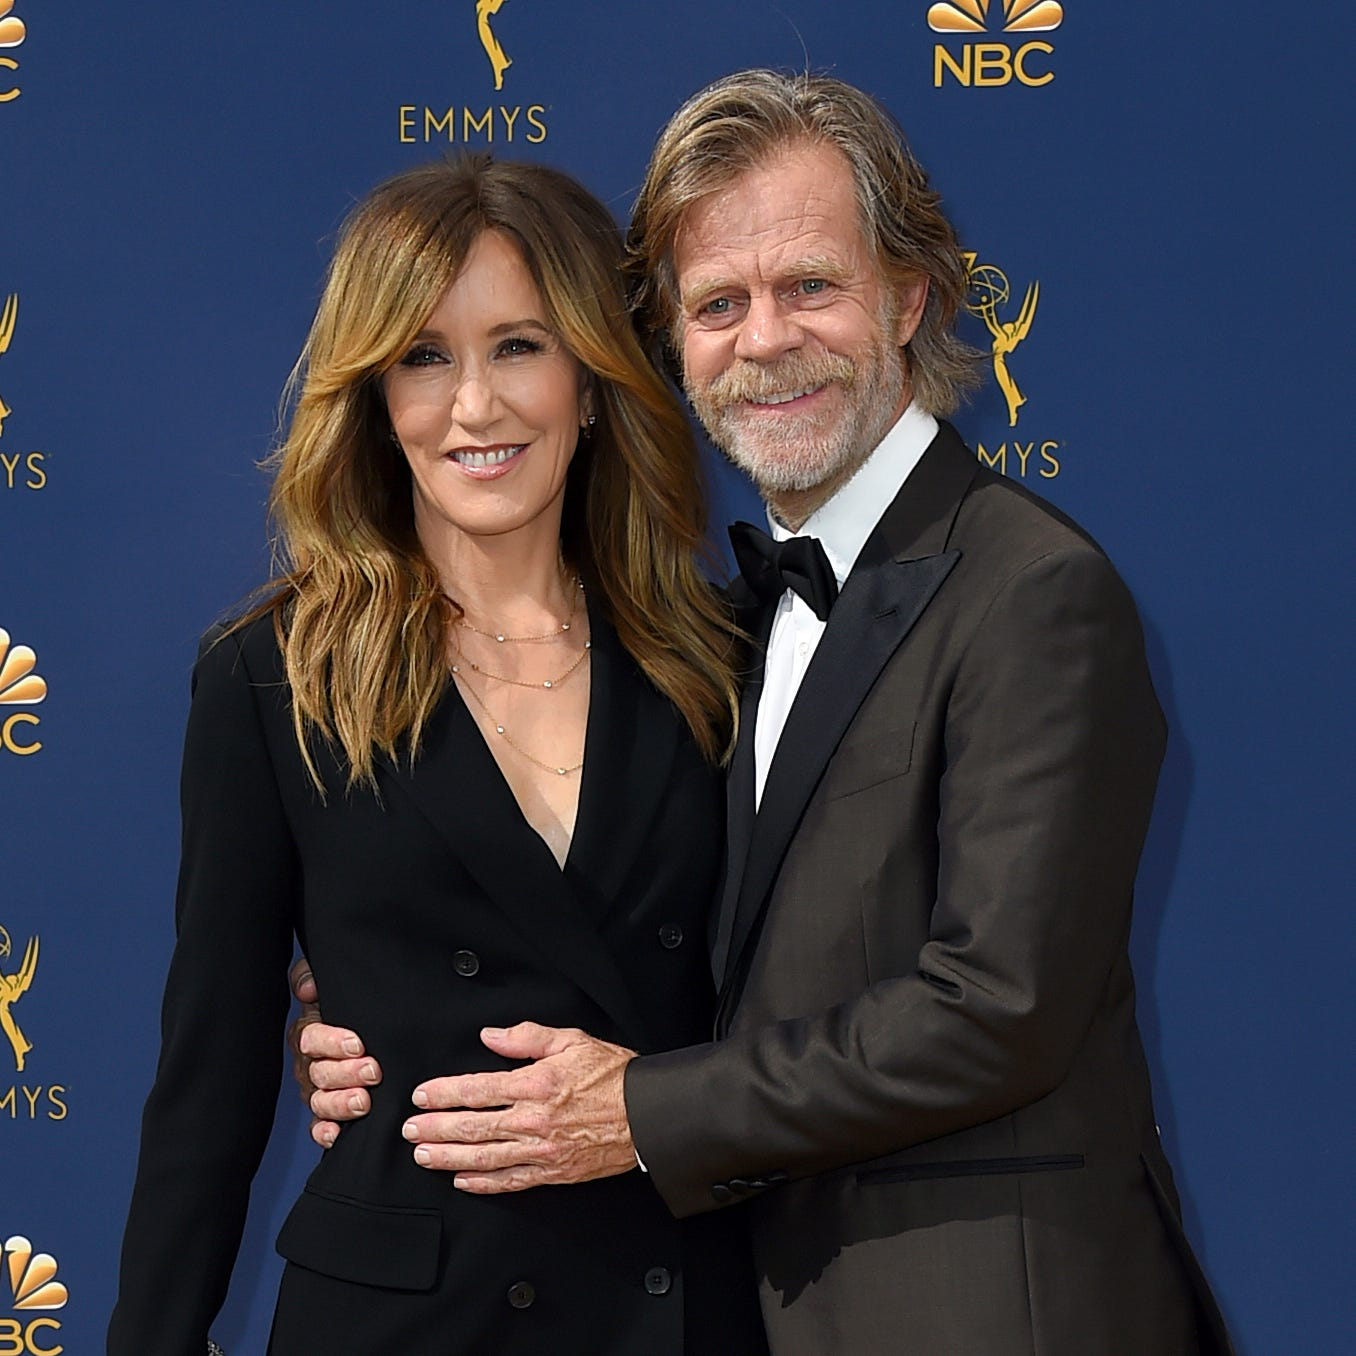 Felicity Huffman, actress charged in college-admission bribery case, has Vermont ties